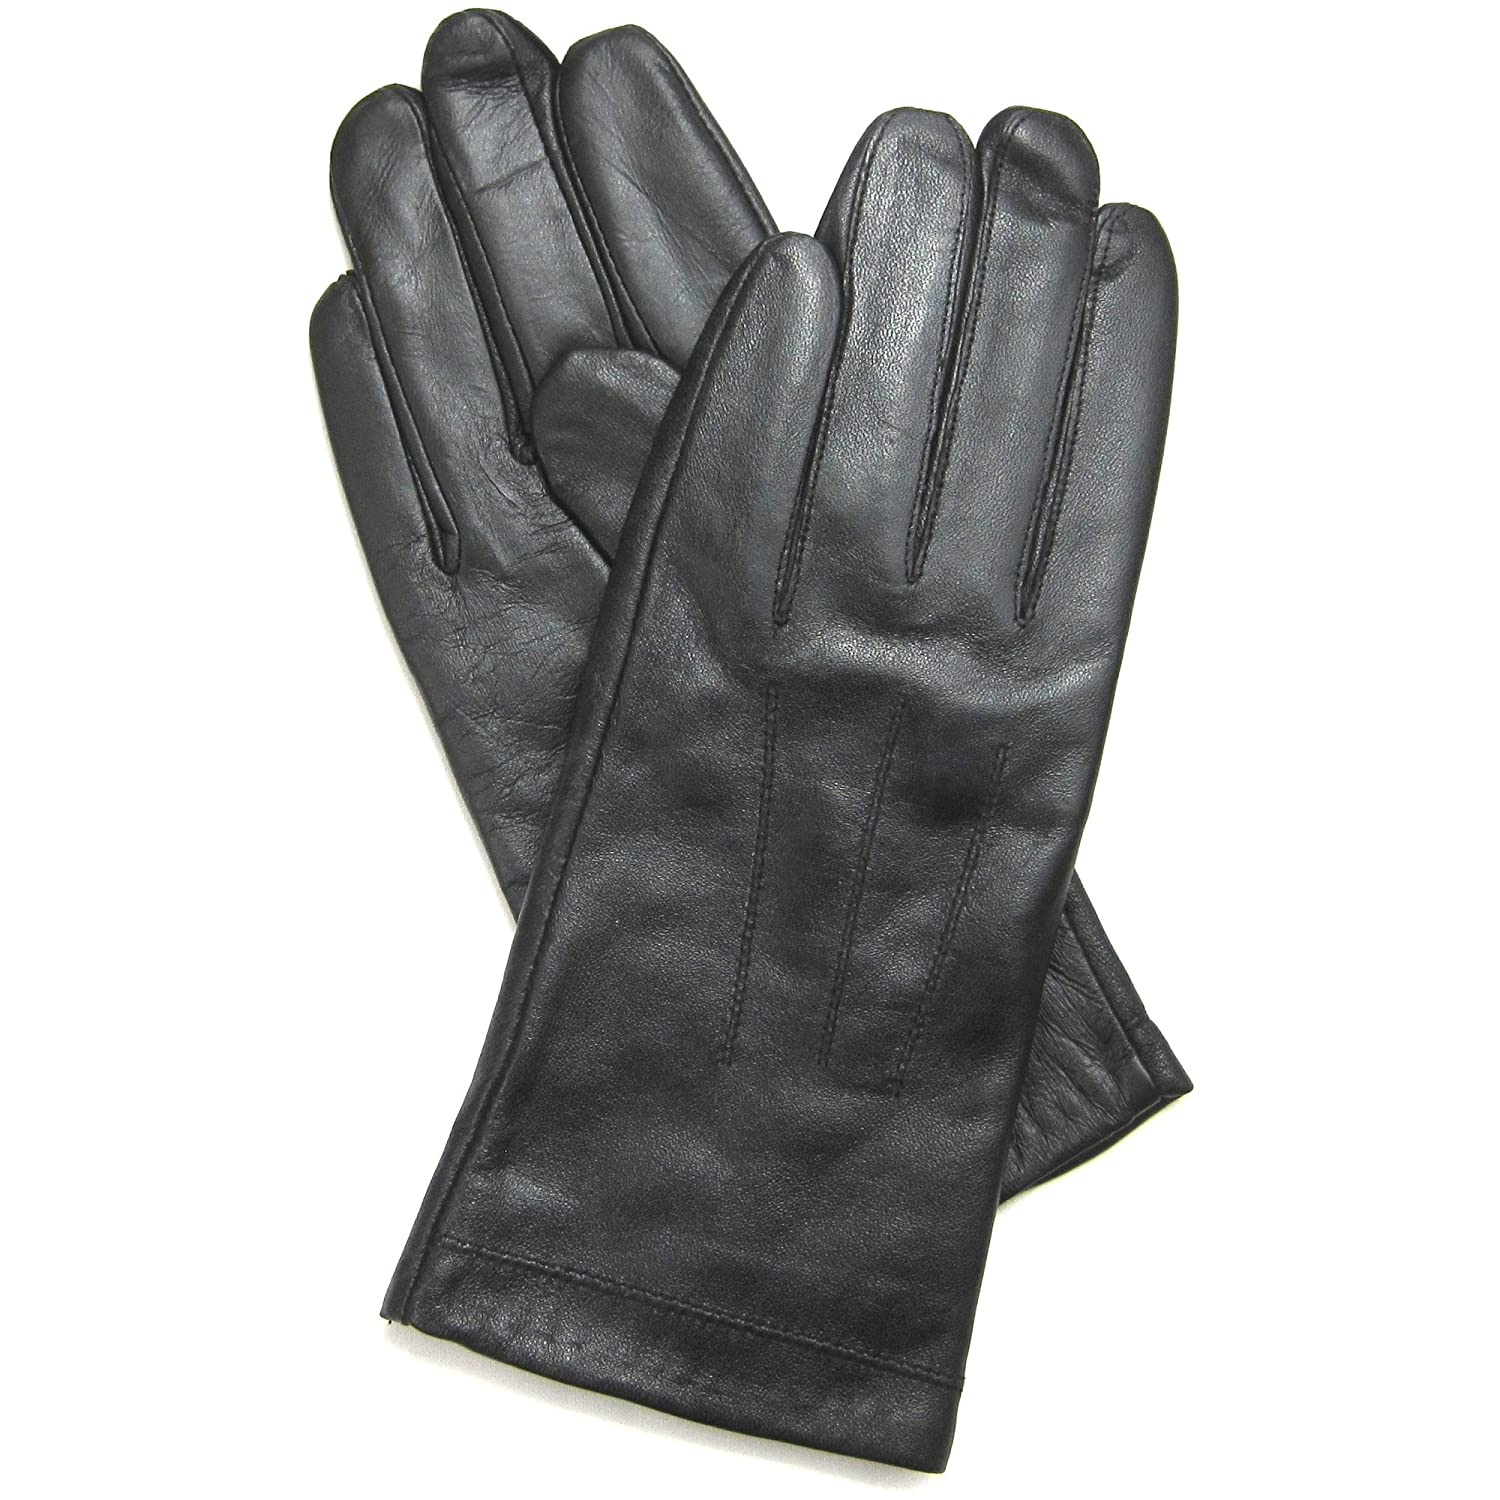 Extra small ladies leather gloves uk - Ladies Luxury Soft Genuine Black Leather Gloves With Full Fleece Lining And 3 Point Stitch